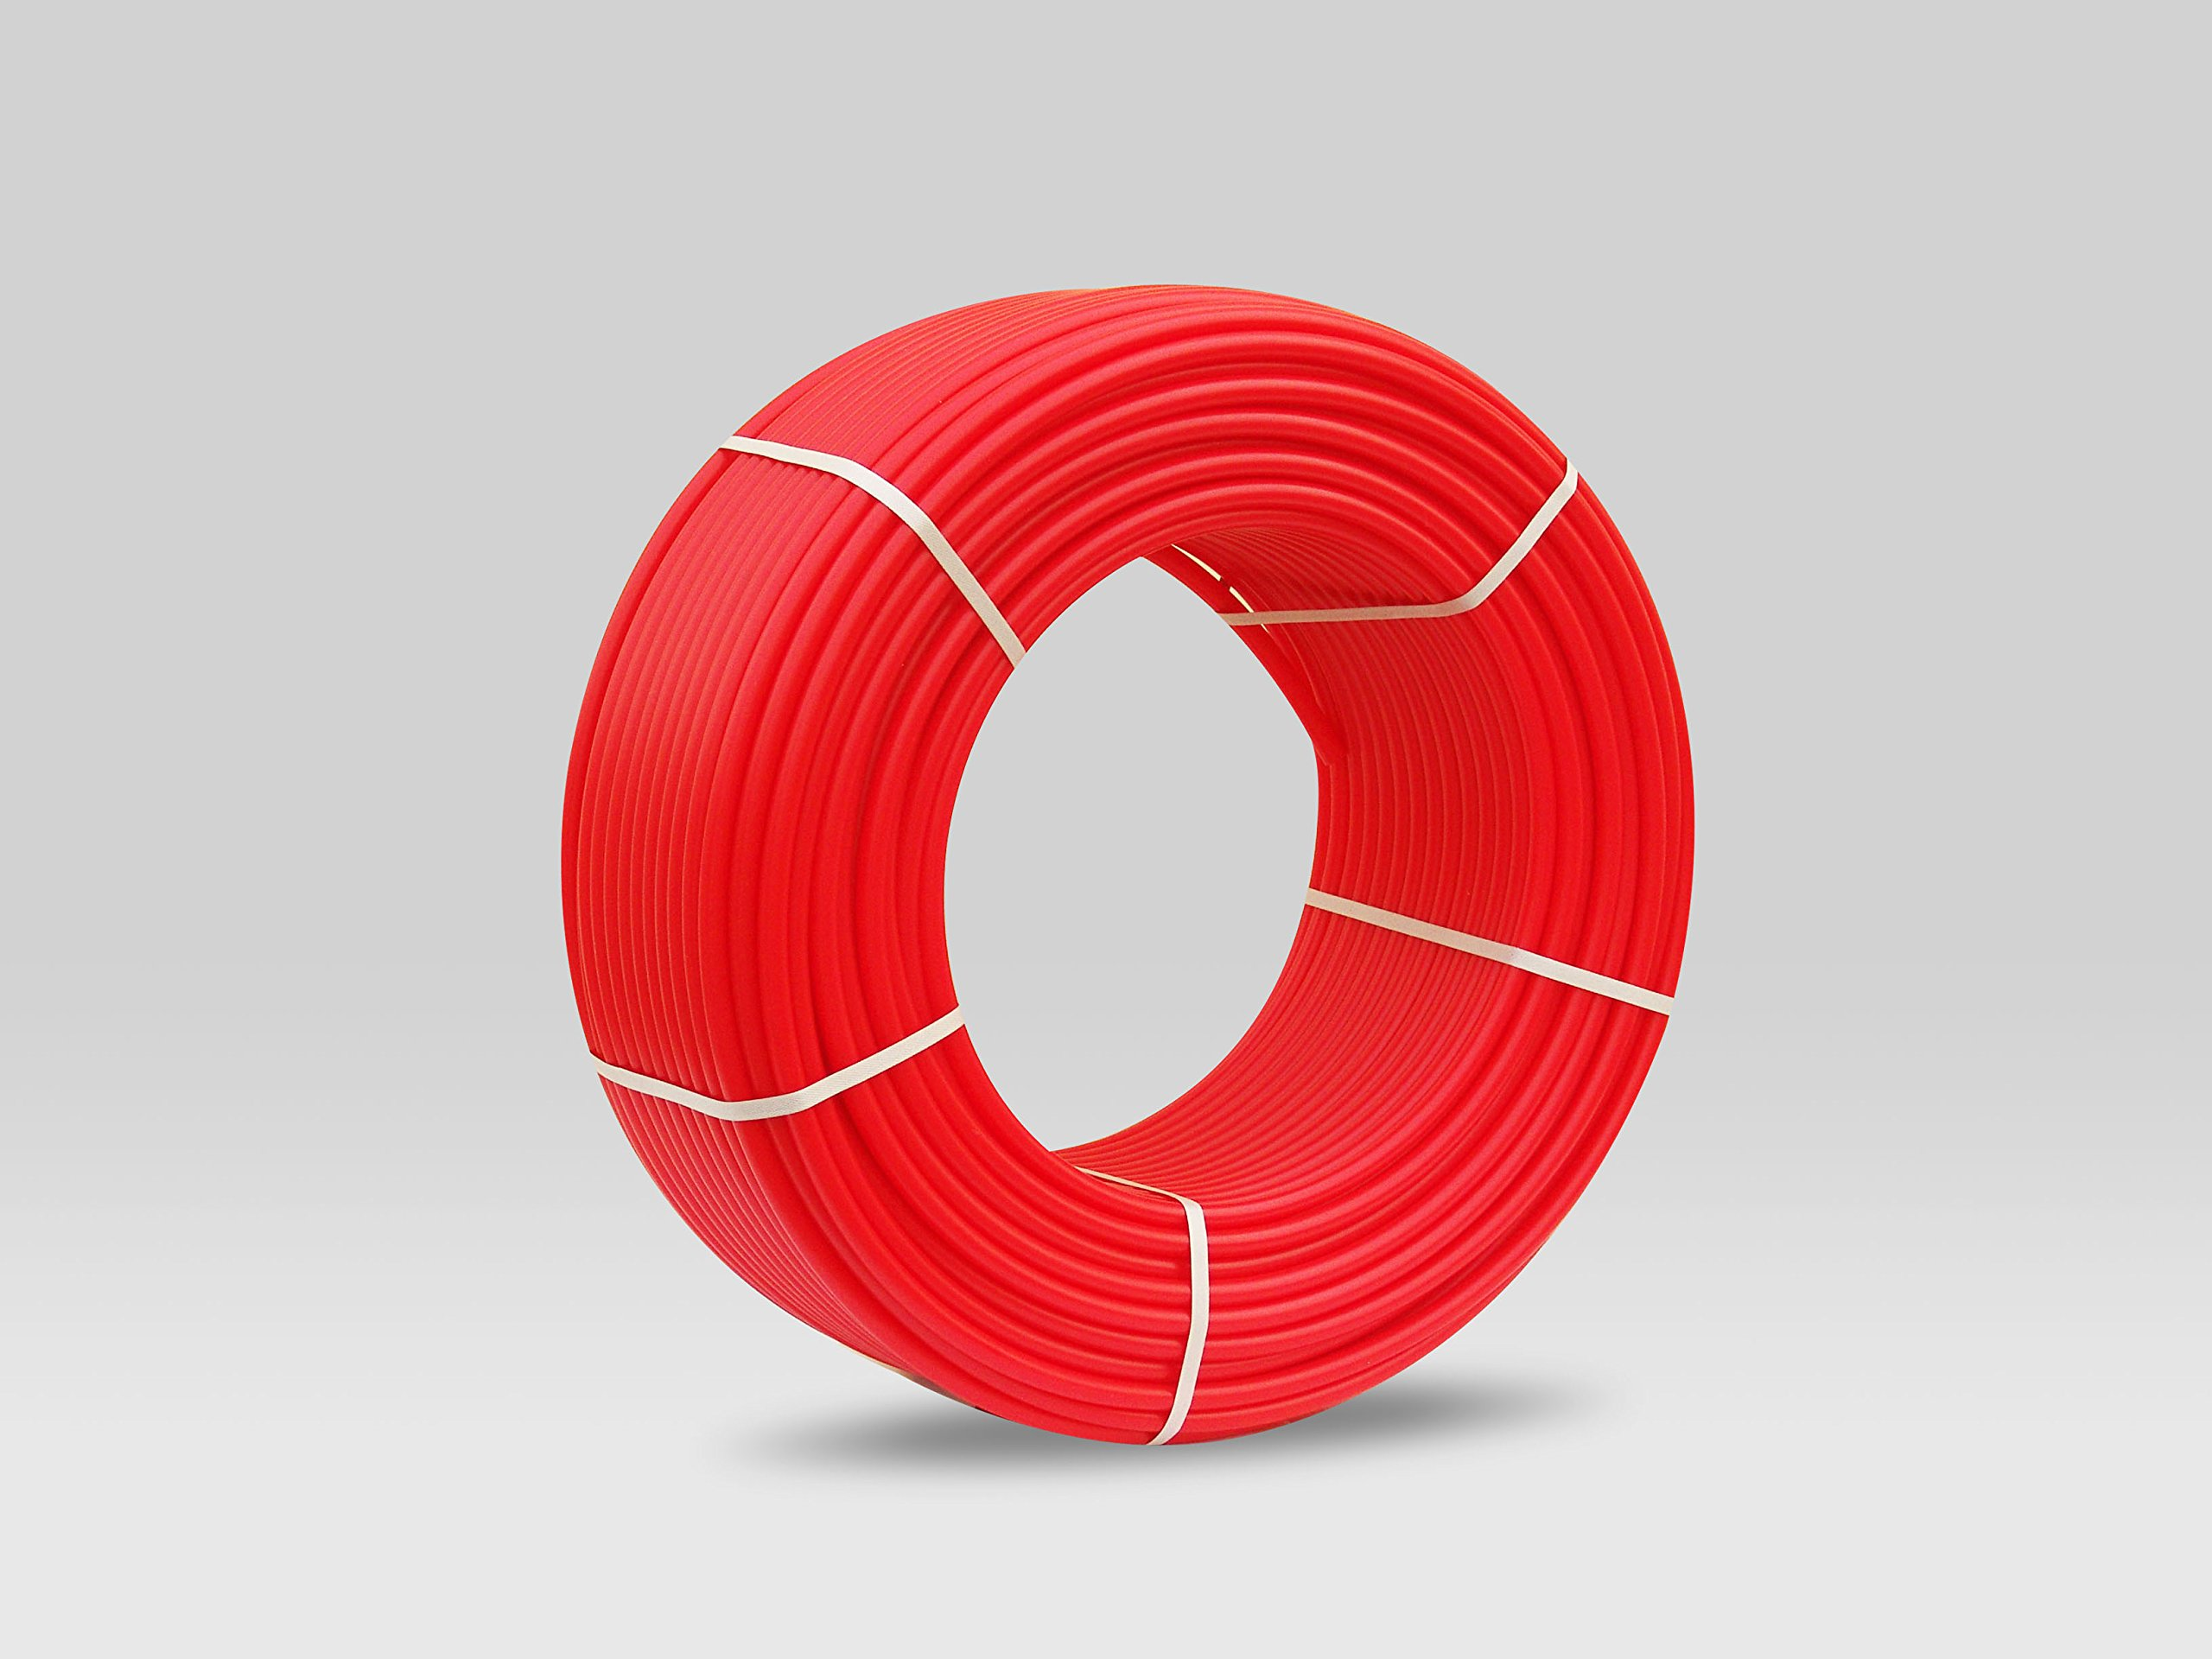 PEX Piping Red 3/4''/300ft-length for potable water Non Oxygen Barrier Piping for Hot/Cold Plumbing and Heating Applications …